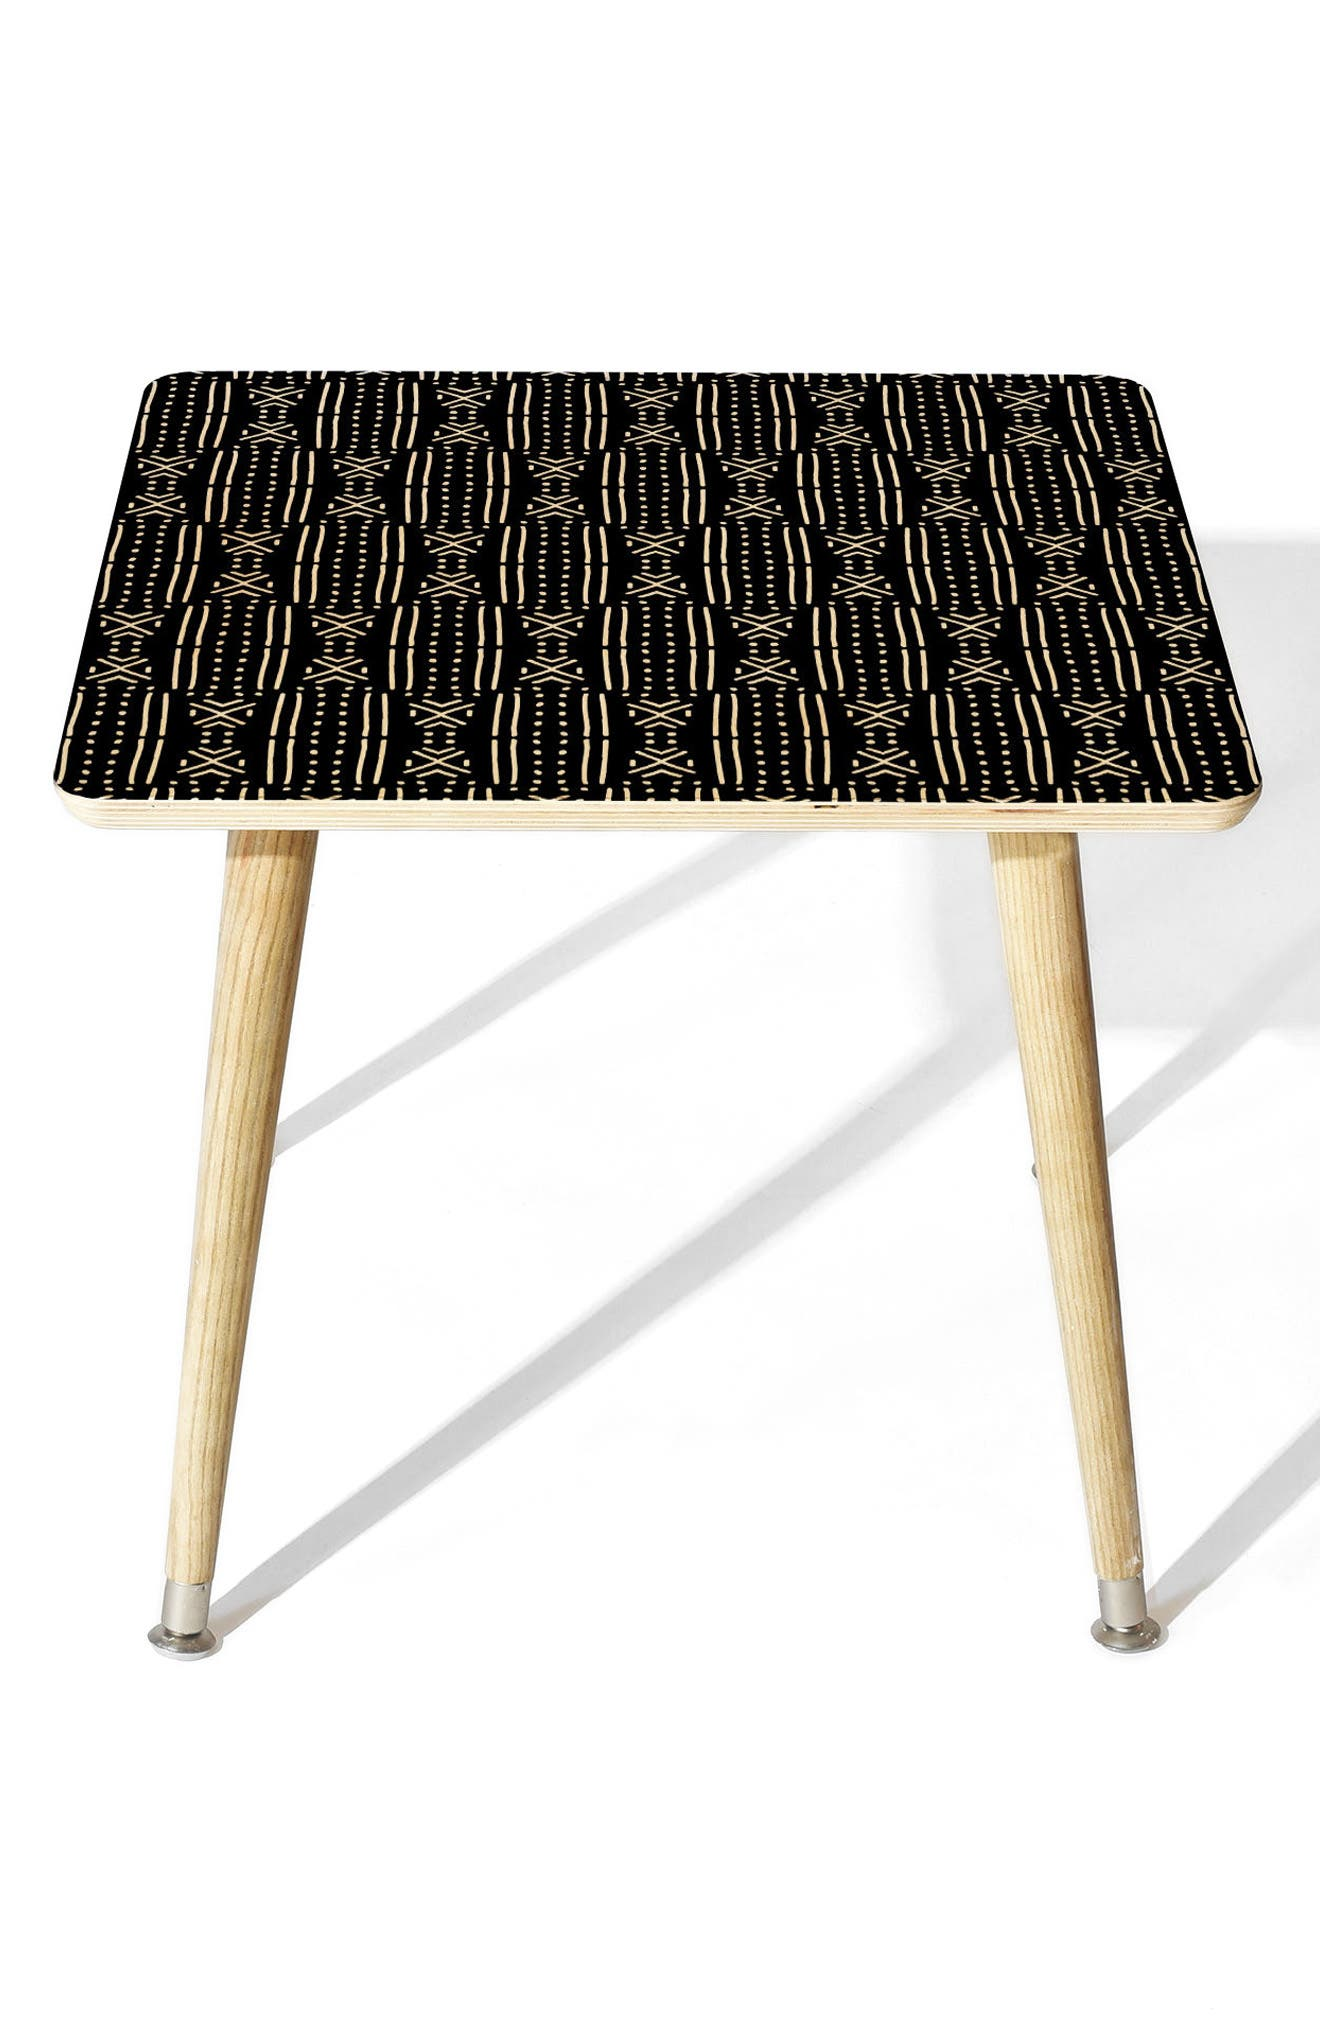 Mudcloth Side Table,                             Main thumbnail 1, color,                             Black